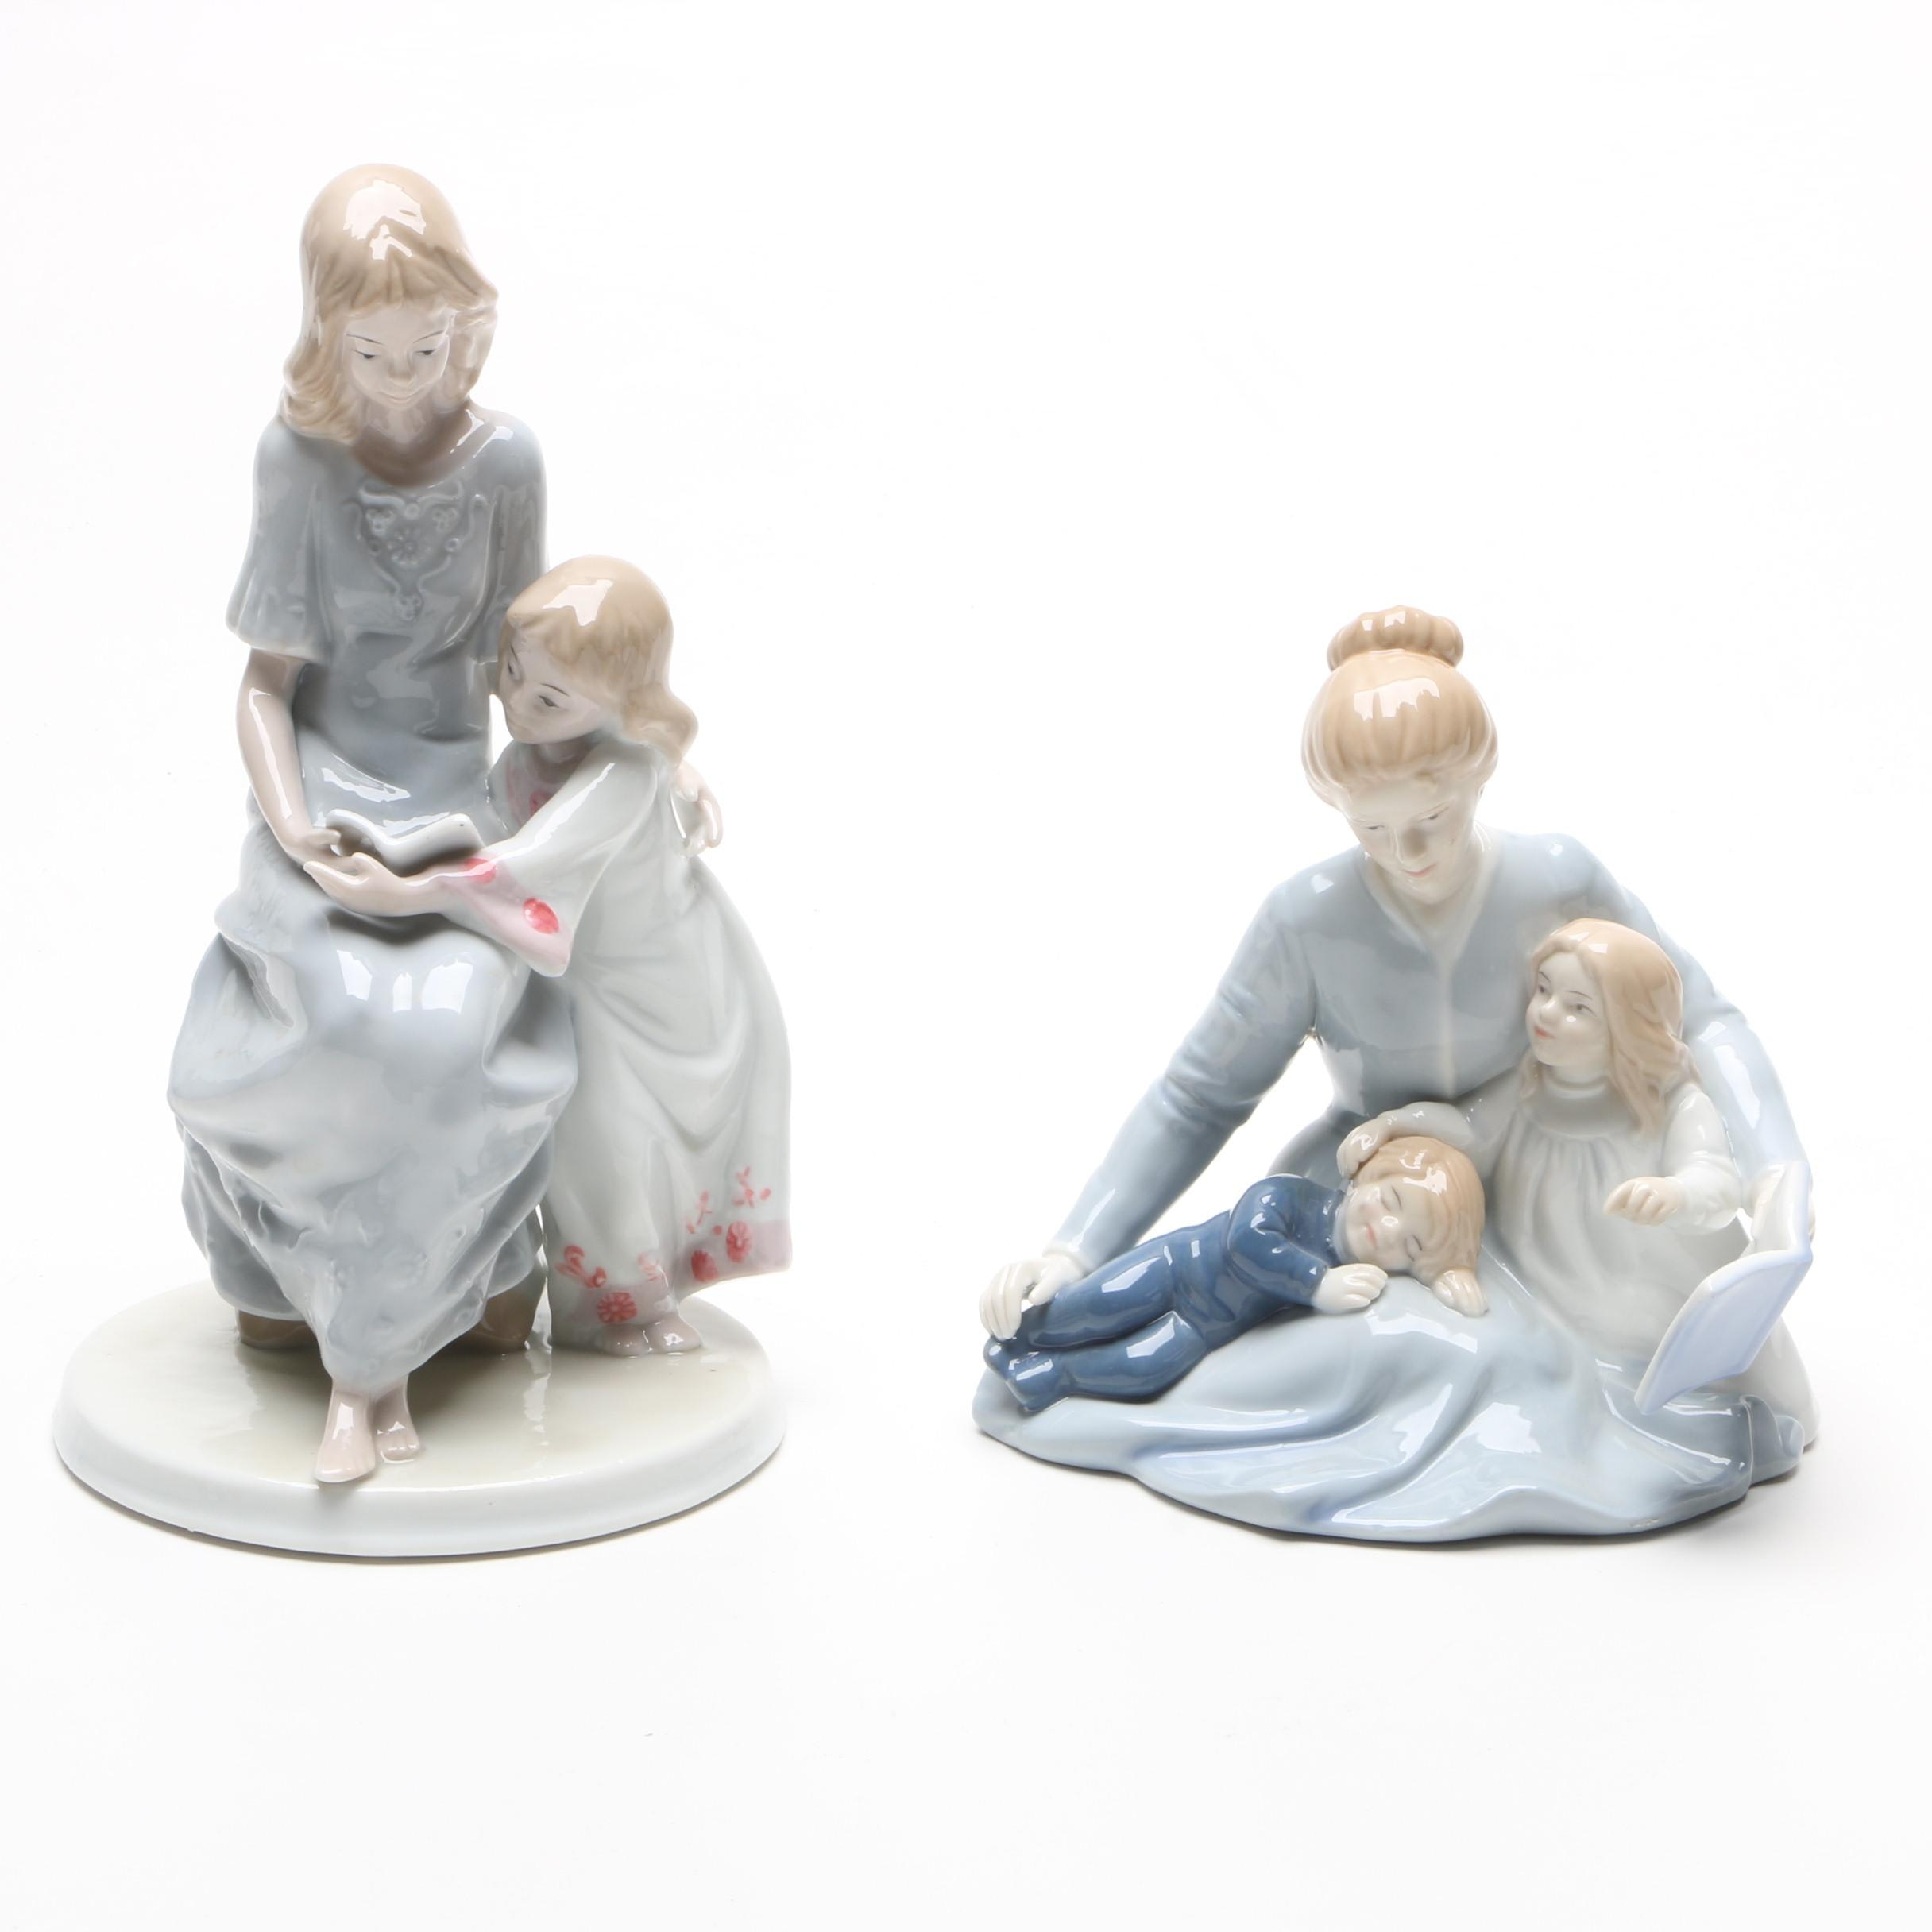 "Avon ""A Mother's Touch"" Porcelain Figurine and More"